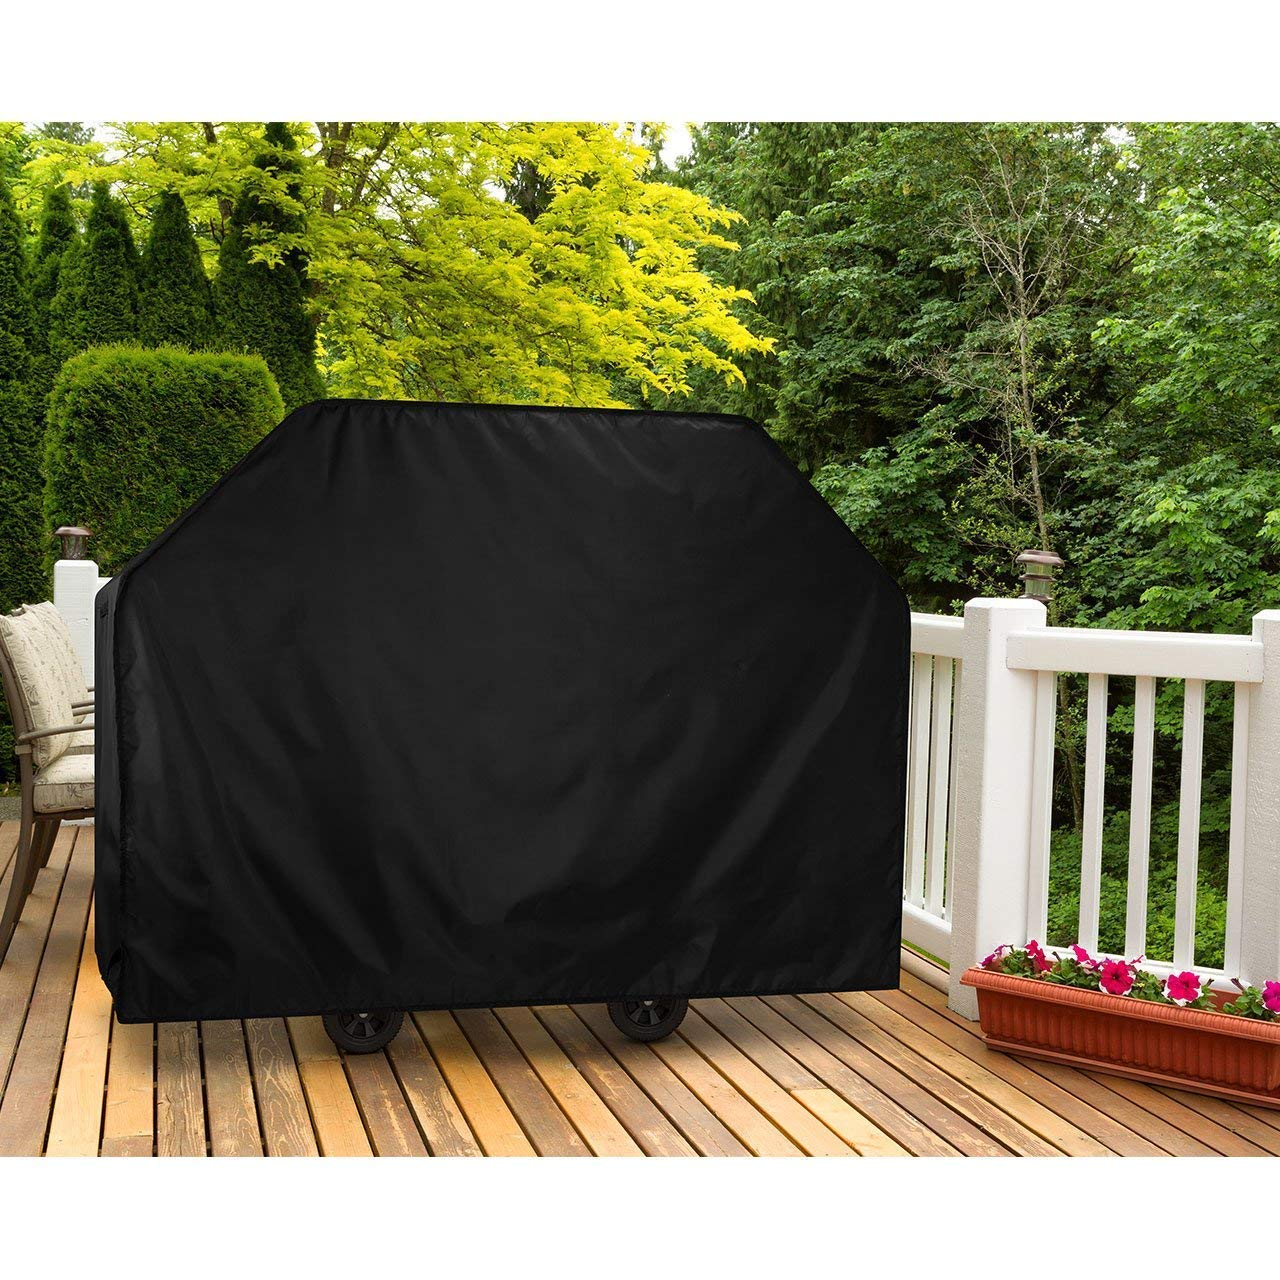 Upgraded Version OMorc 58-Inch Waterproof Grill Cover with PVC Coating Barbecue Cover BBQ Grill Cover Round Outdoor Garden Patio Grill Protection for Holland Brinkmann and Char Broil etc Jenn Air